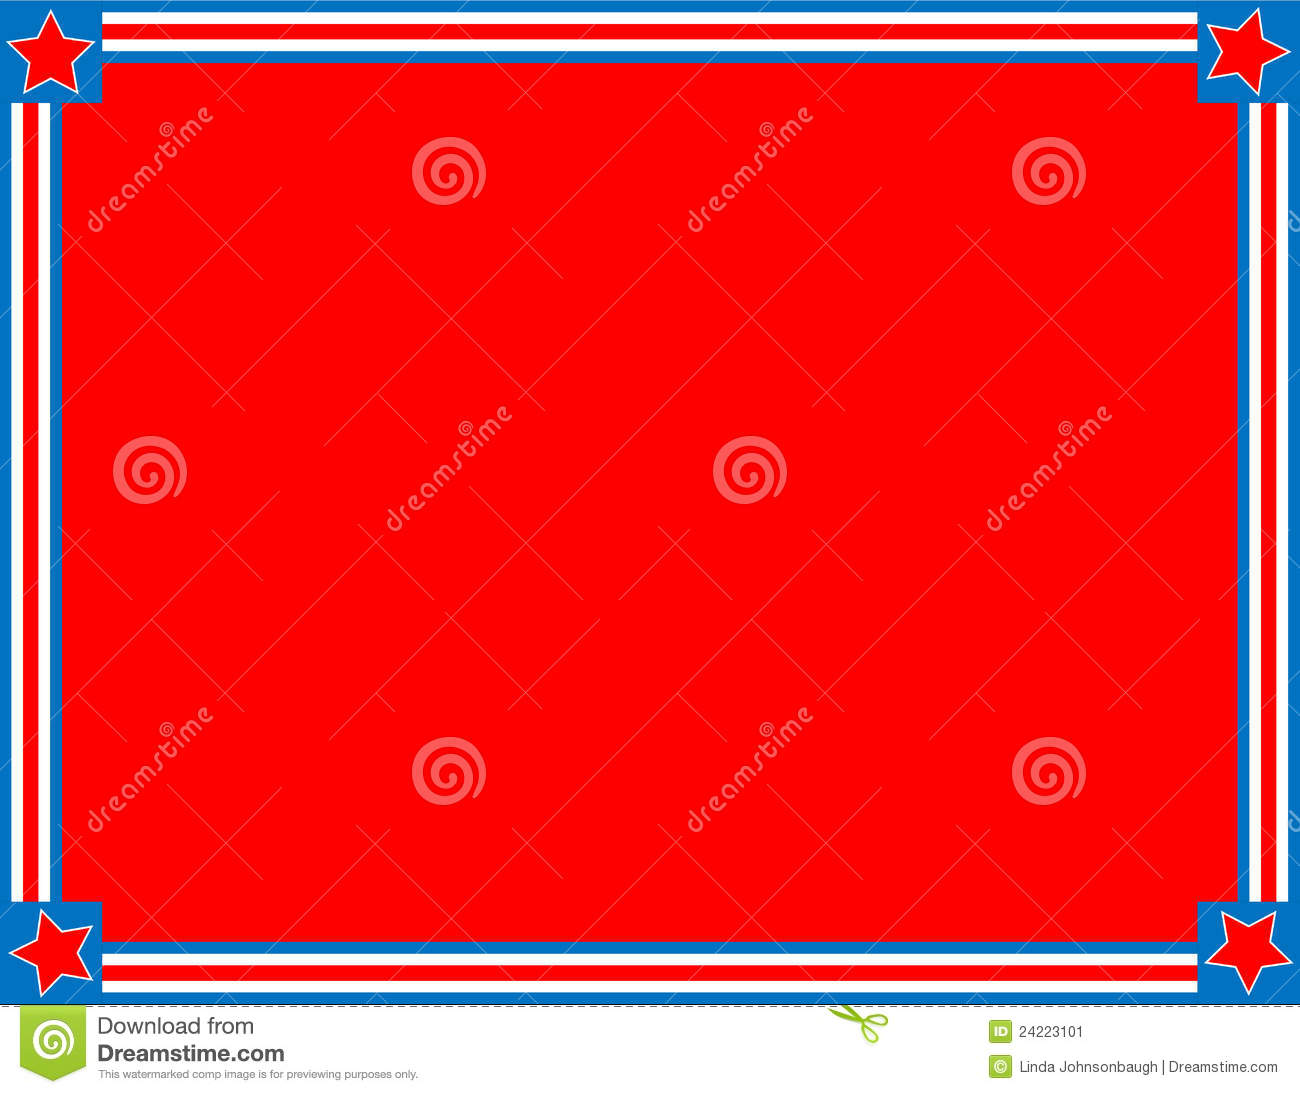 Black And White Striped Wallpaper Vector Red White Blue Star Striped Background Stock Vector